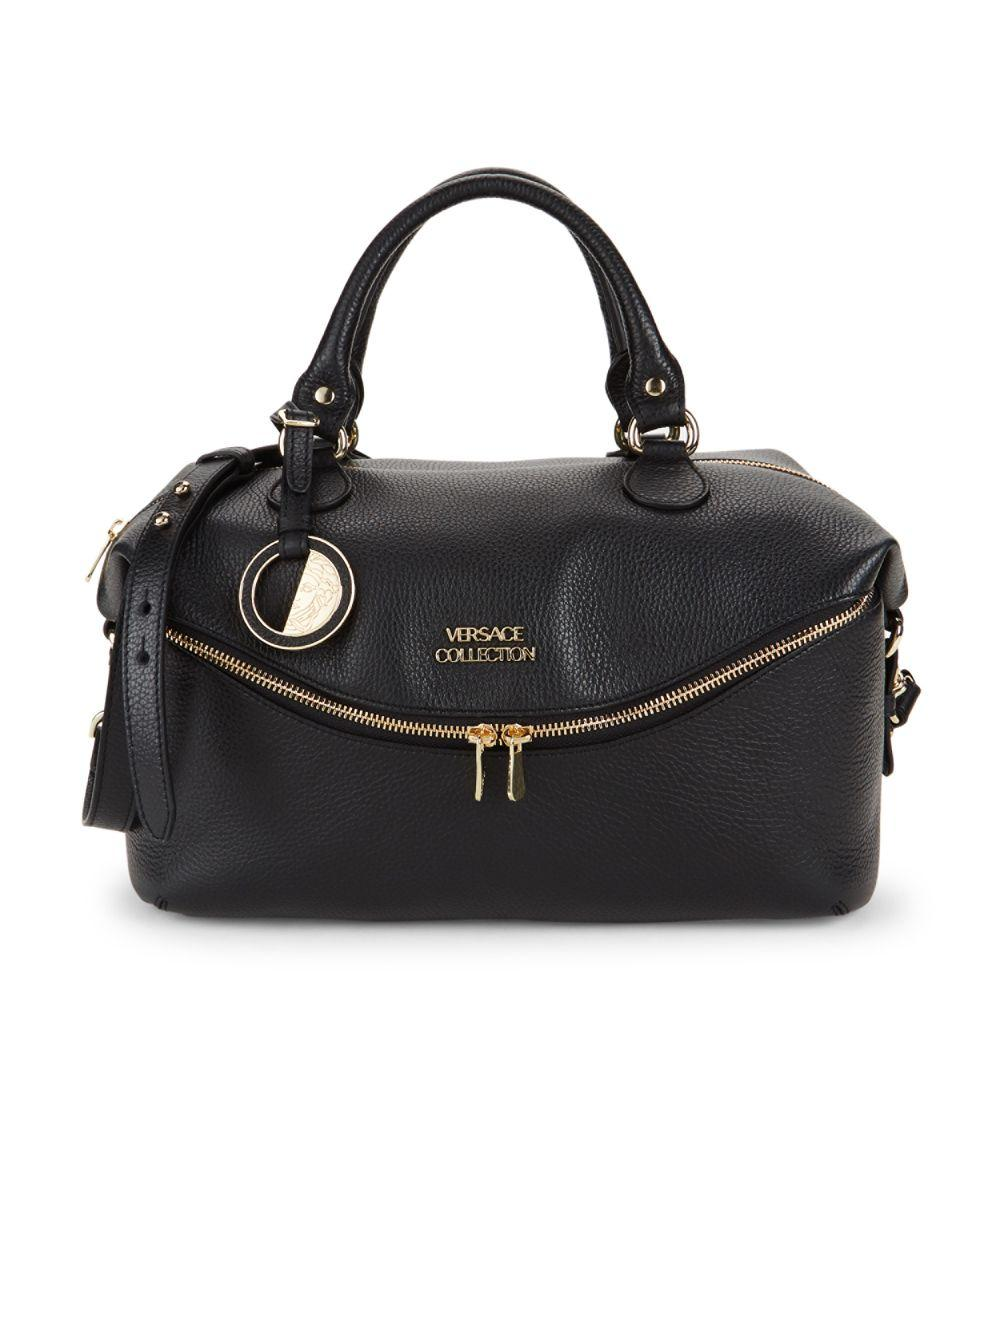 Lyst - Versace Classic Leather Top Handle Bag in Black 54998c5bd54af